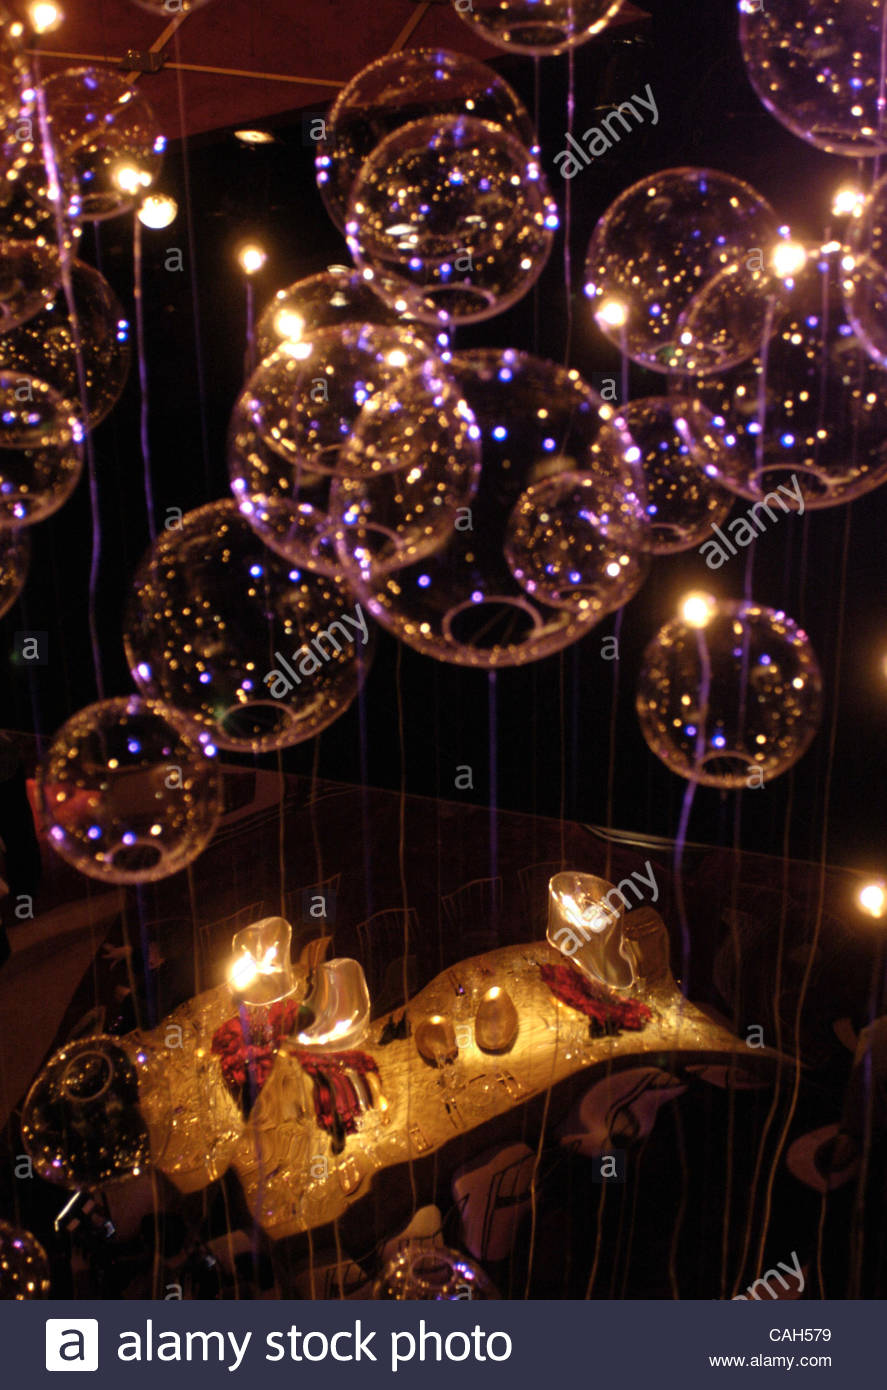 During the Governors Ball Press Preview the ceiling is decorated with glass bubbles and firefly lights float above Stock Photo